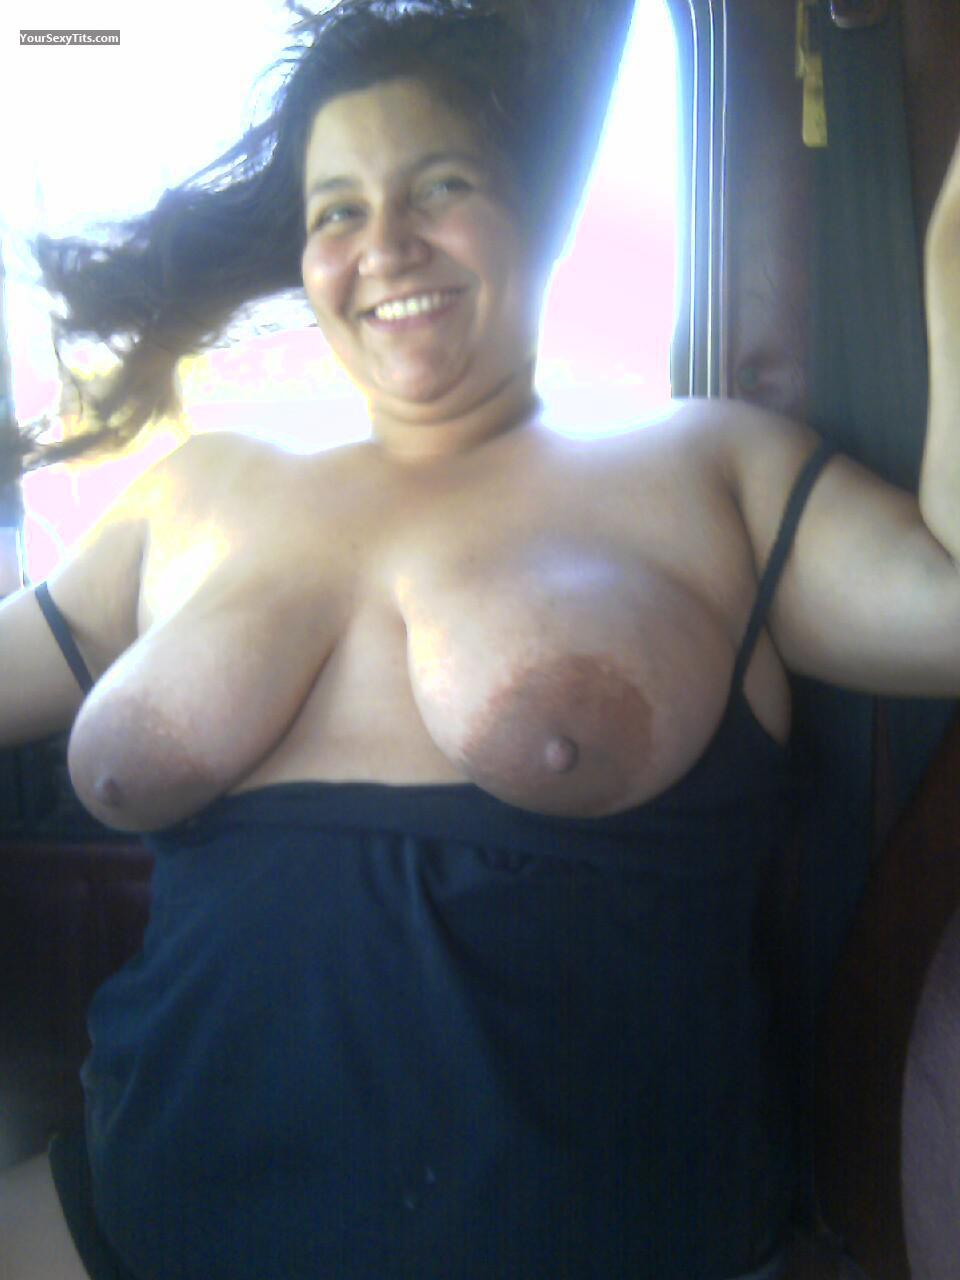 Tit Flash: Wife's Big Tits - Topless Tweety from Canada